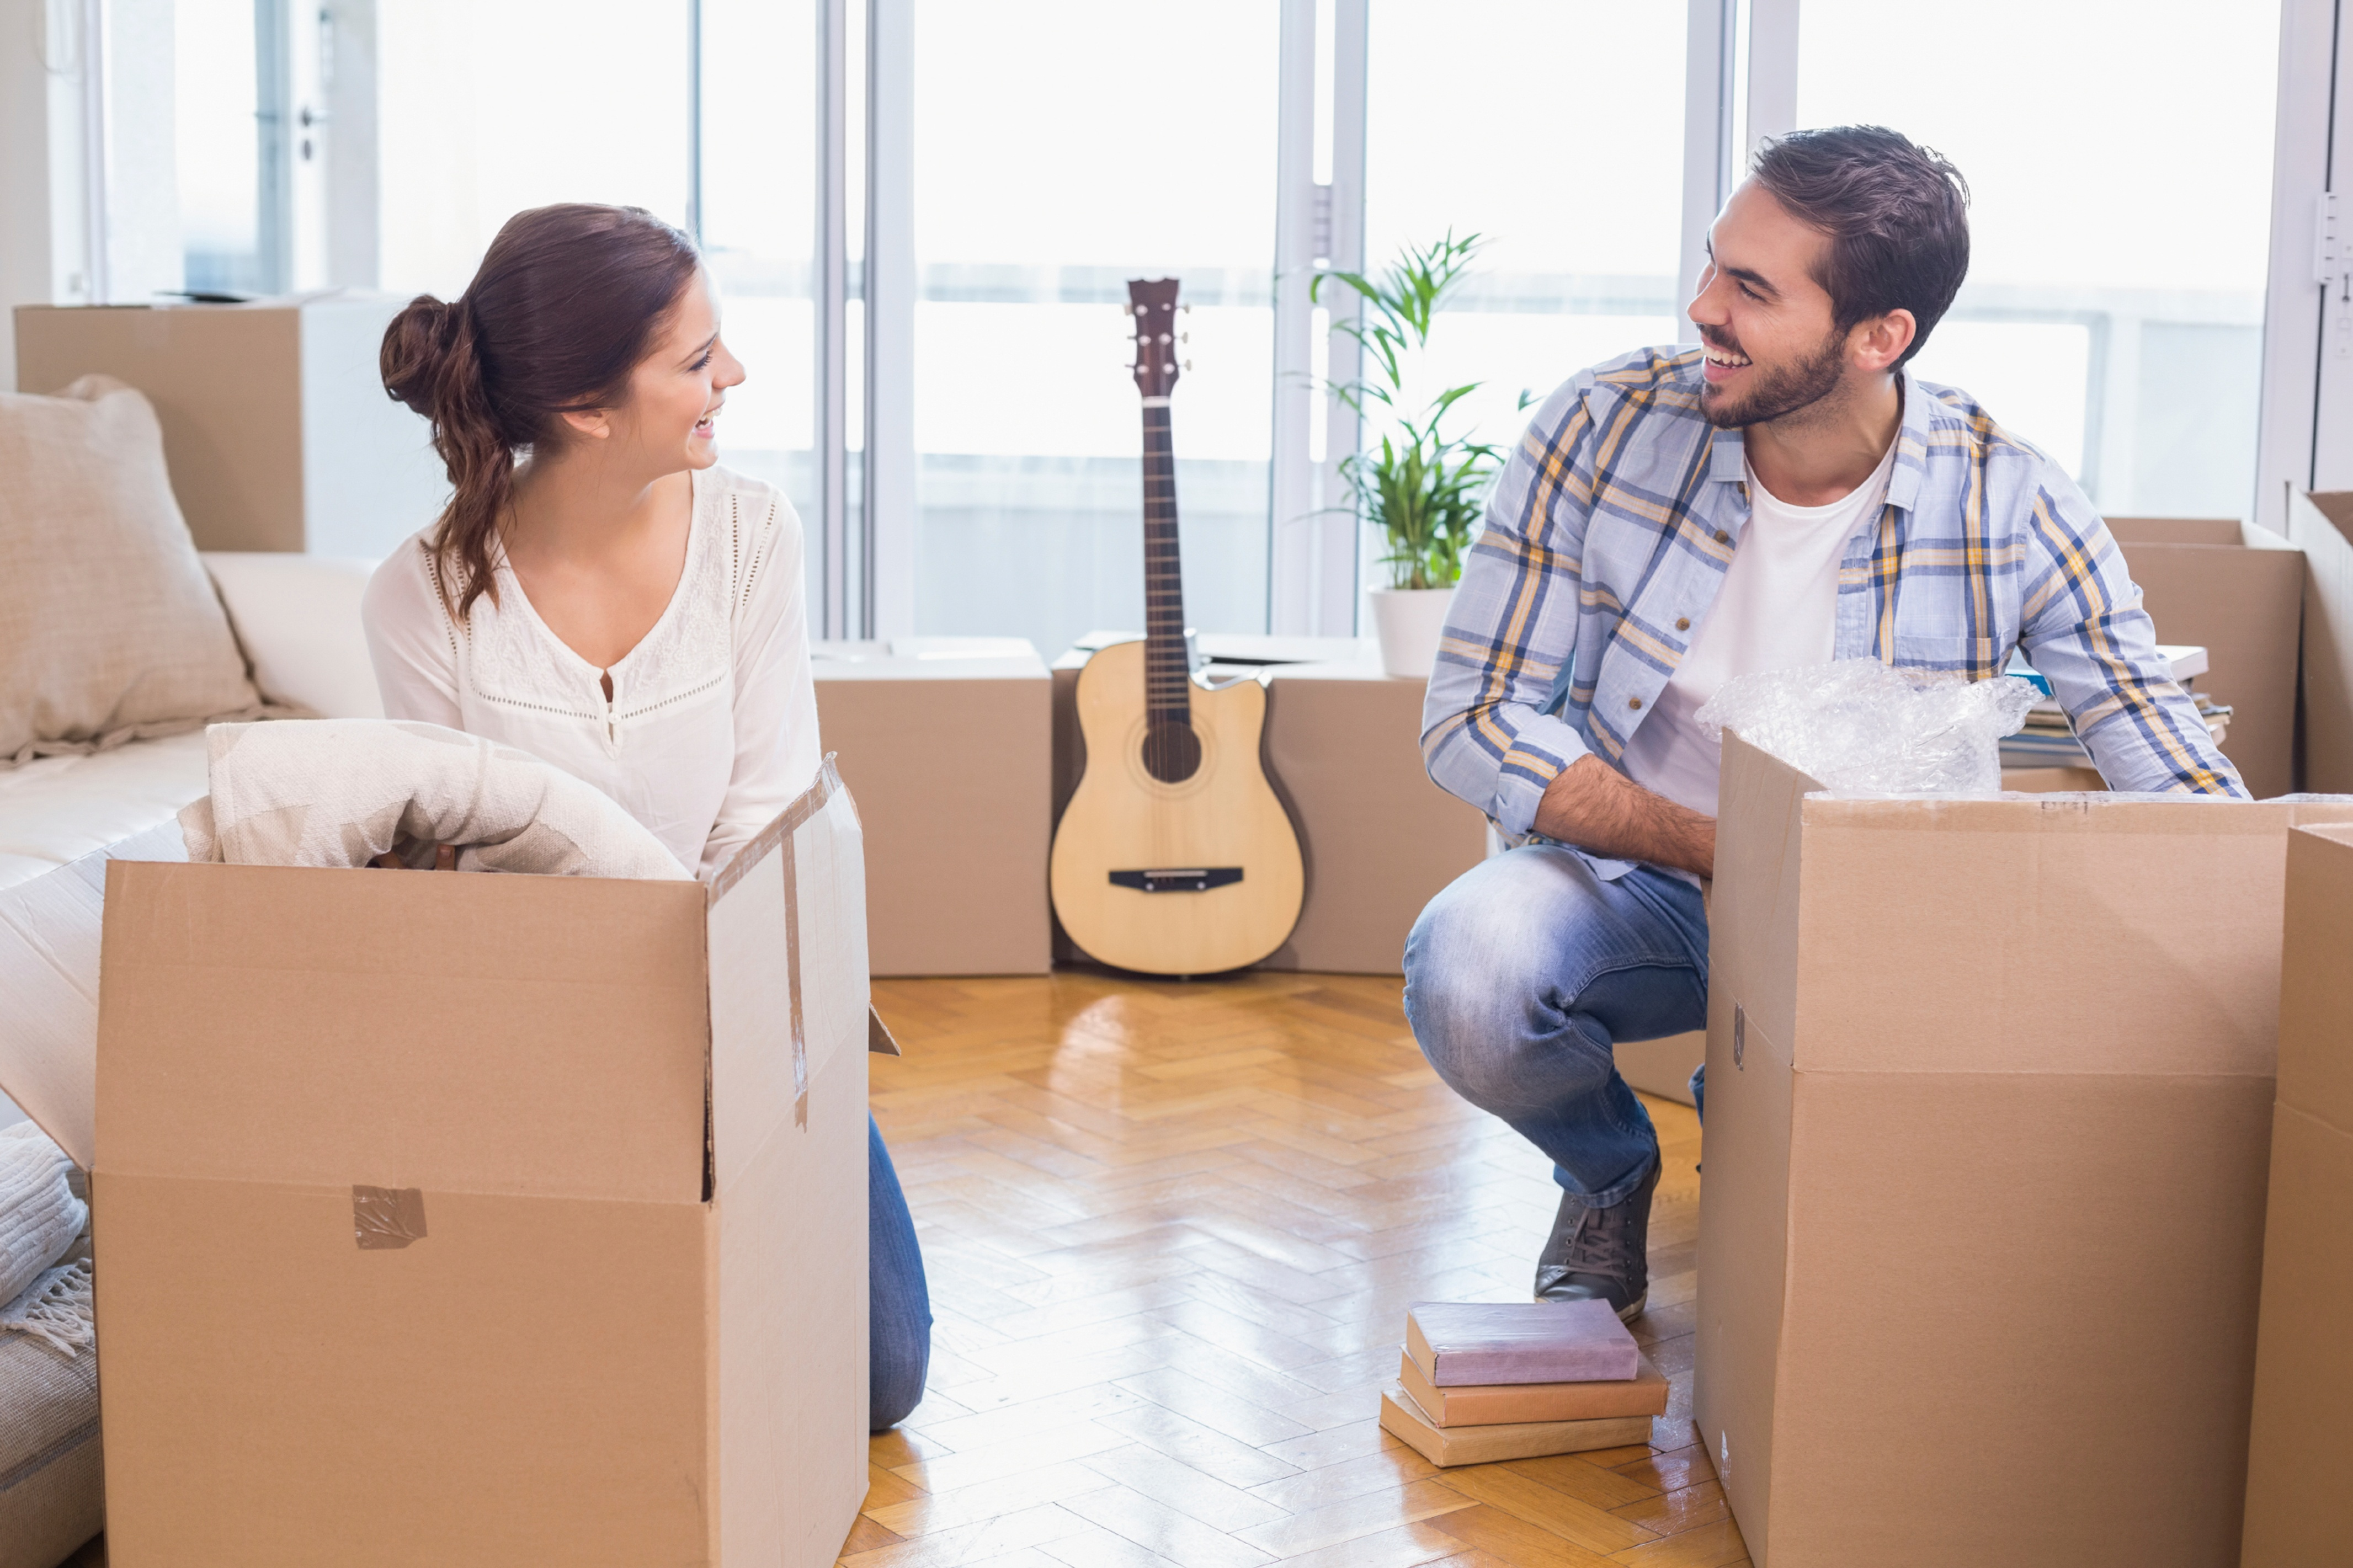 How to steer clear of rental property scams